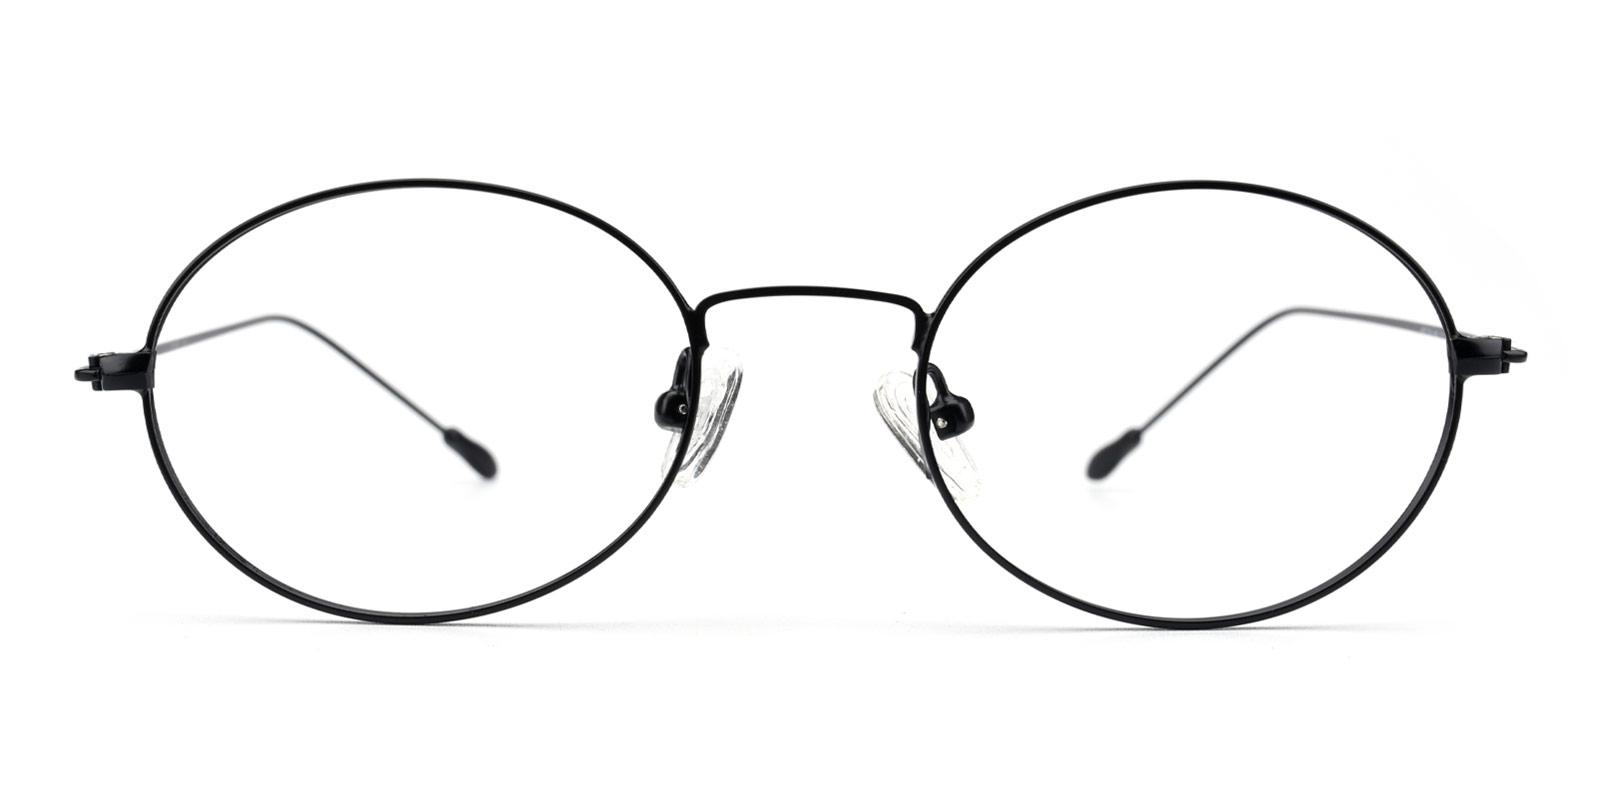 Bertha-Black-Oval-Metal-Eyeglasses-additional2